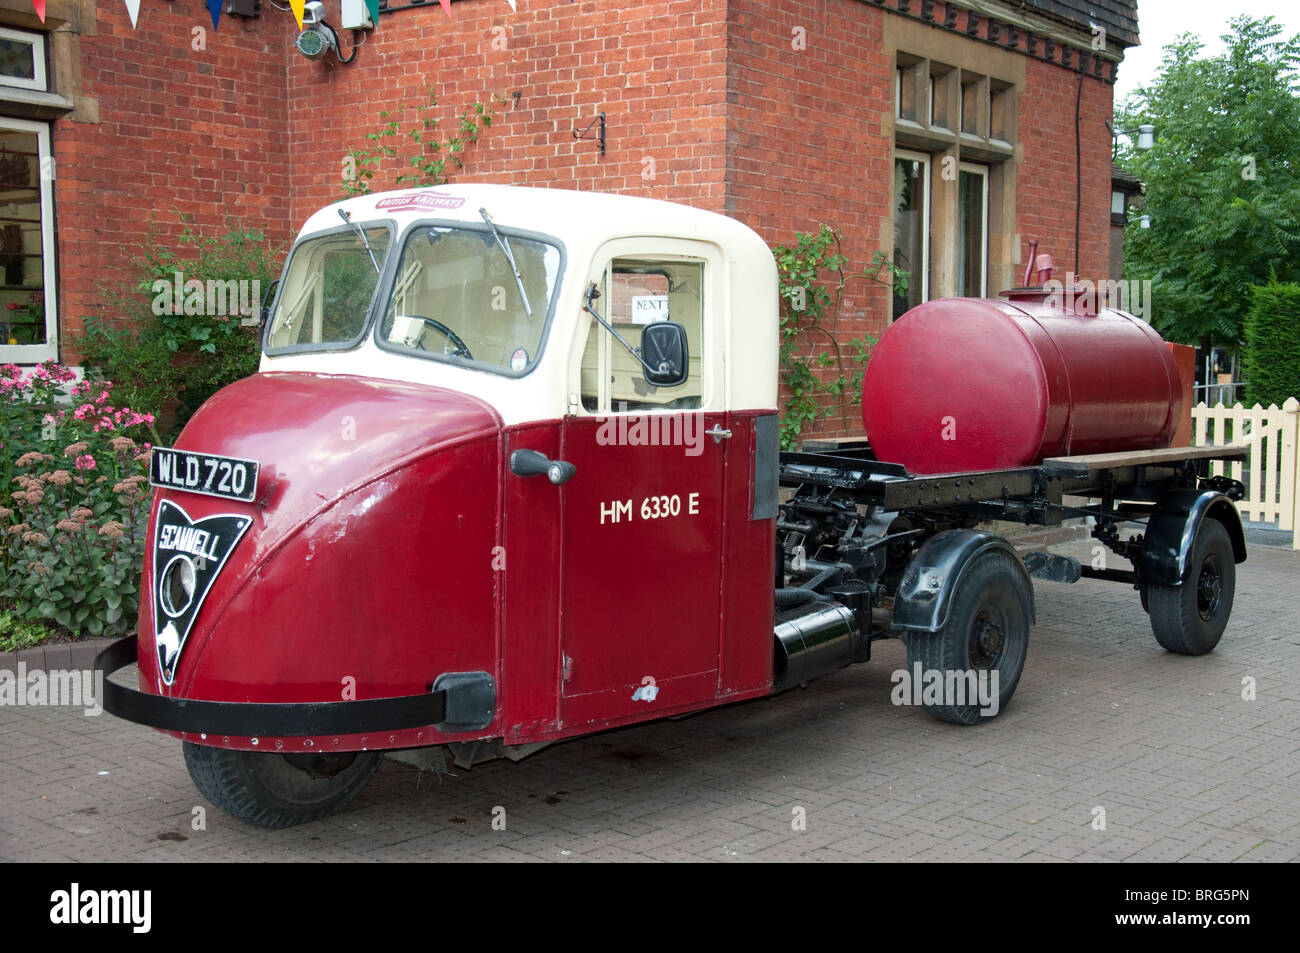 Scammell Scarab Tractor unit pulling  liquid tank - Stock Image